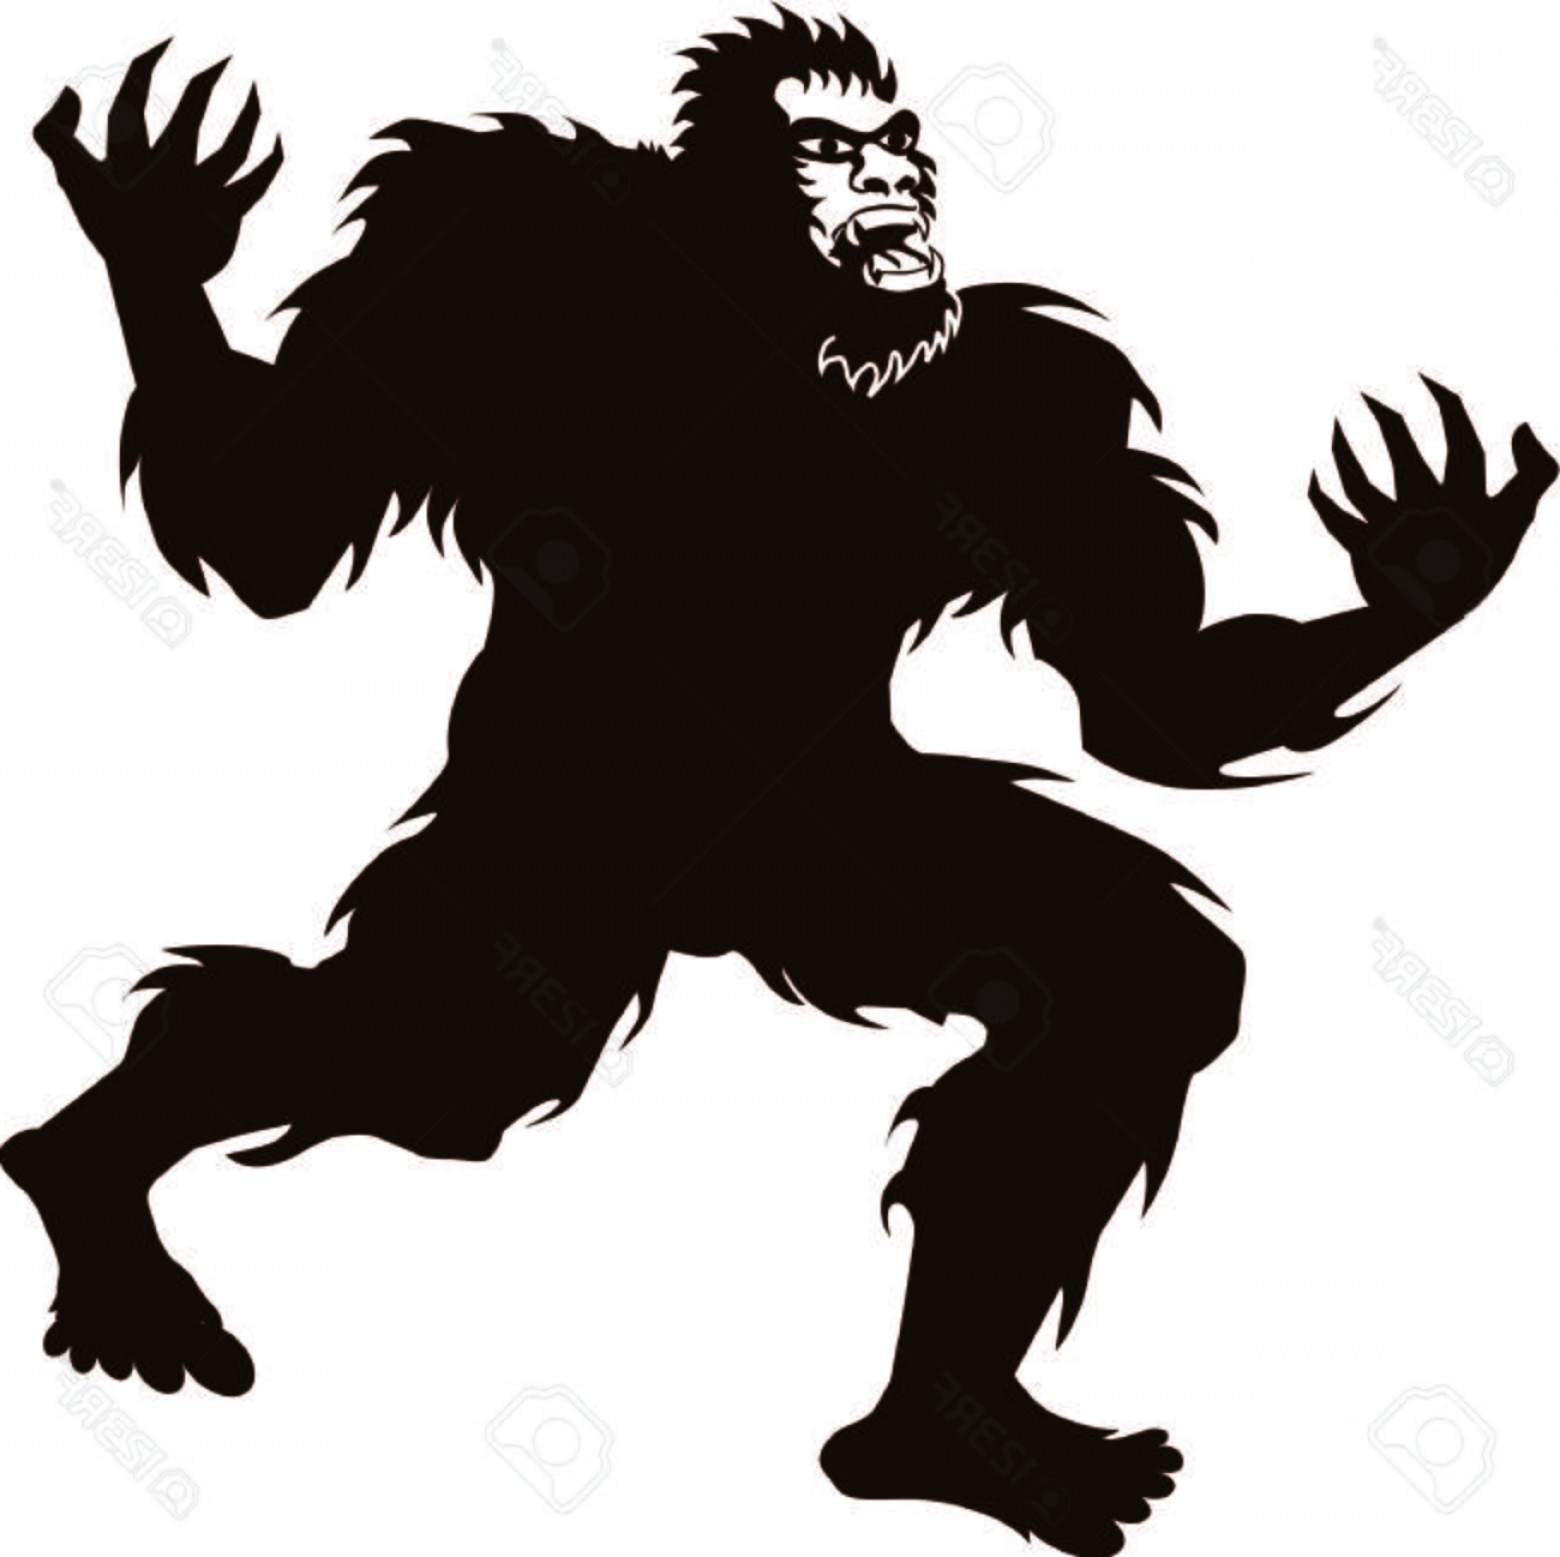 1560x1557 Photostock Vector Bigfoot Sasquatch Screaming Howling Silhouette